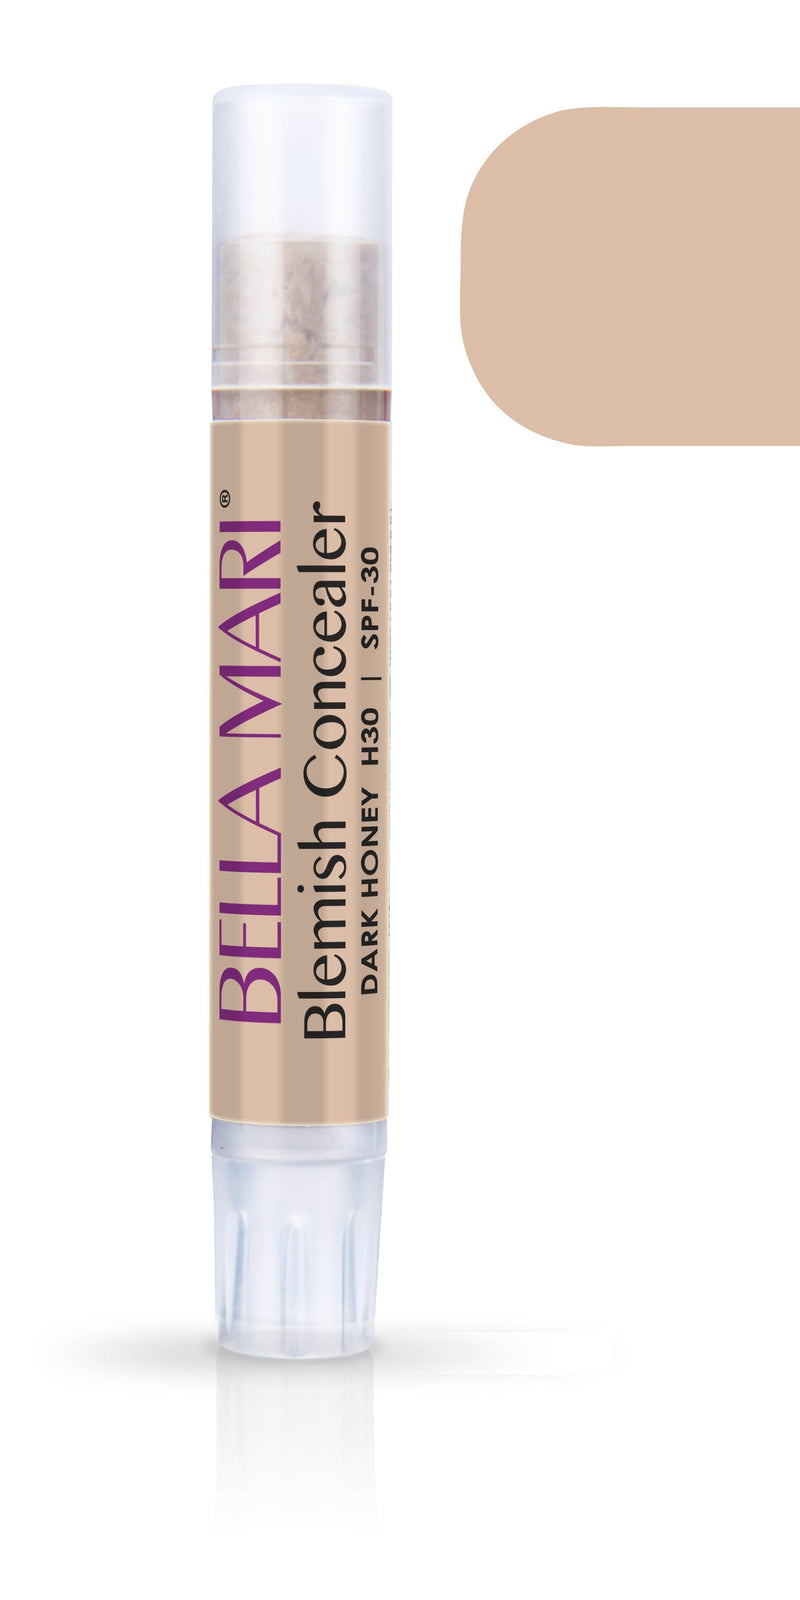 Bella Mari Natural Blemish Concealer Stick; 0.1floz - Bella Mari Natural Blemish Concealer Stick; 0.1floz - Dark Honey